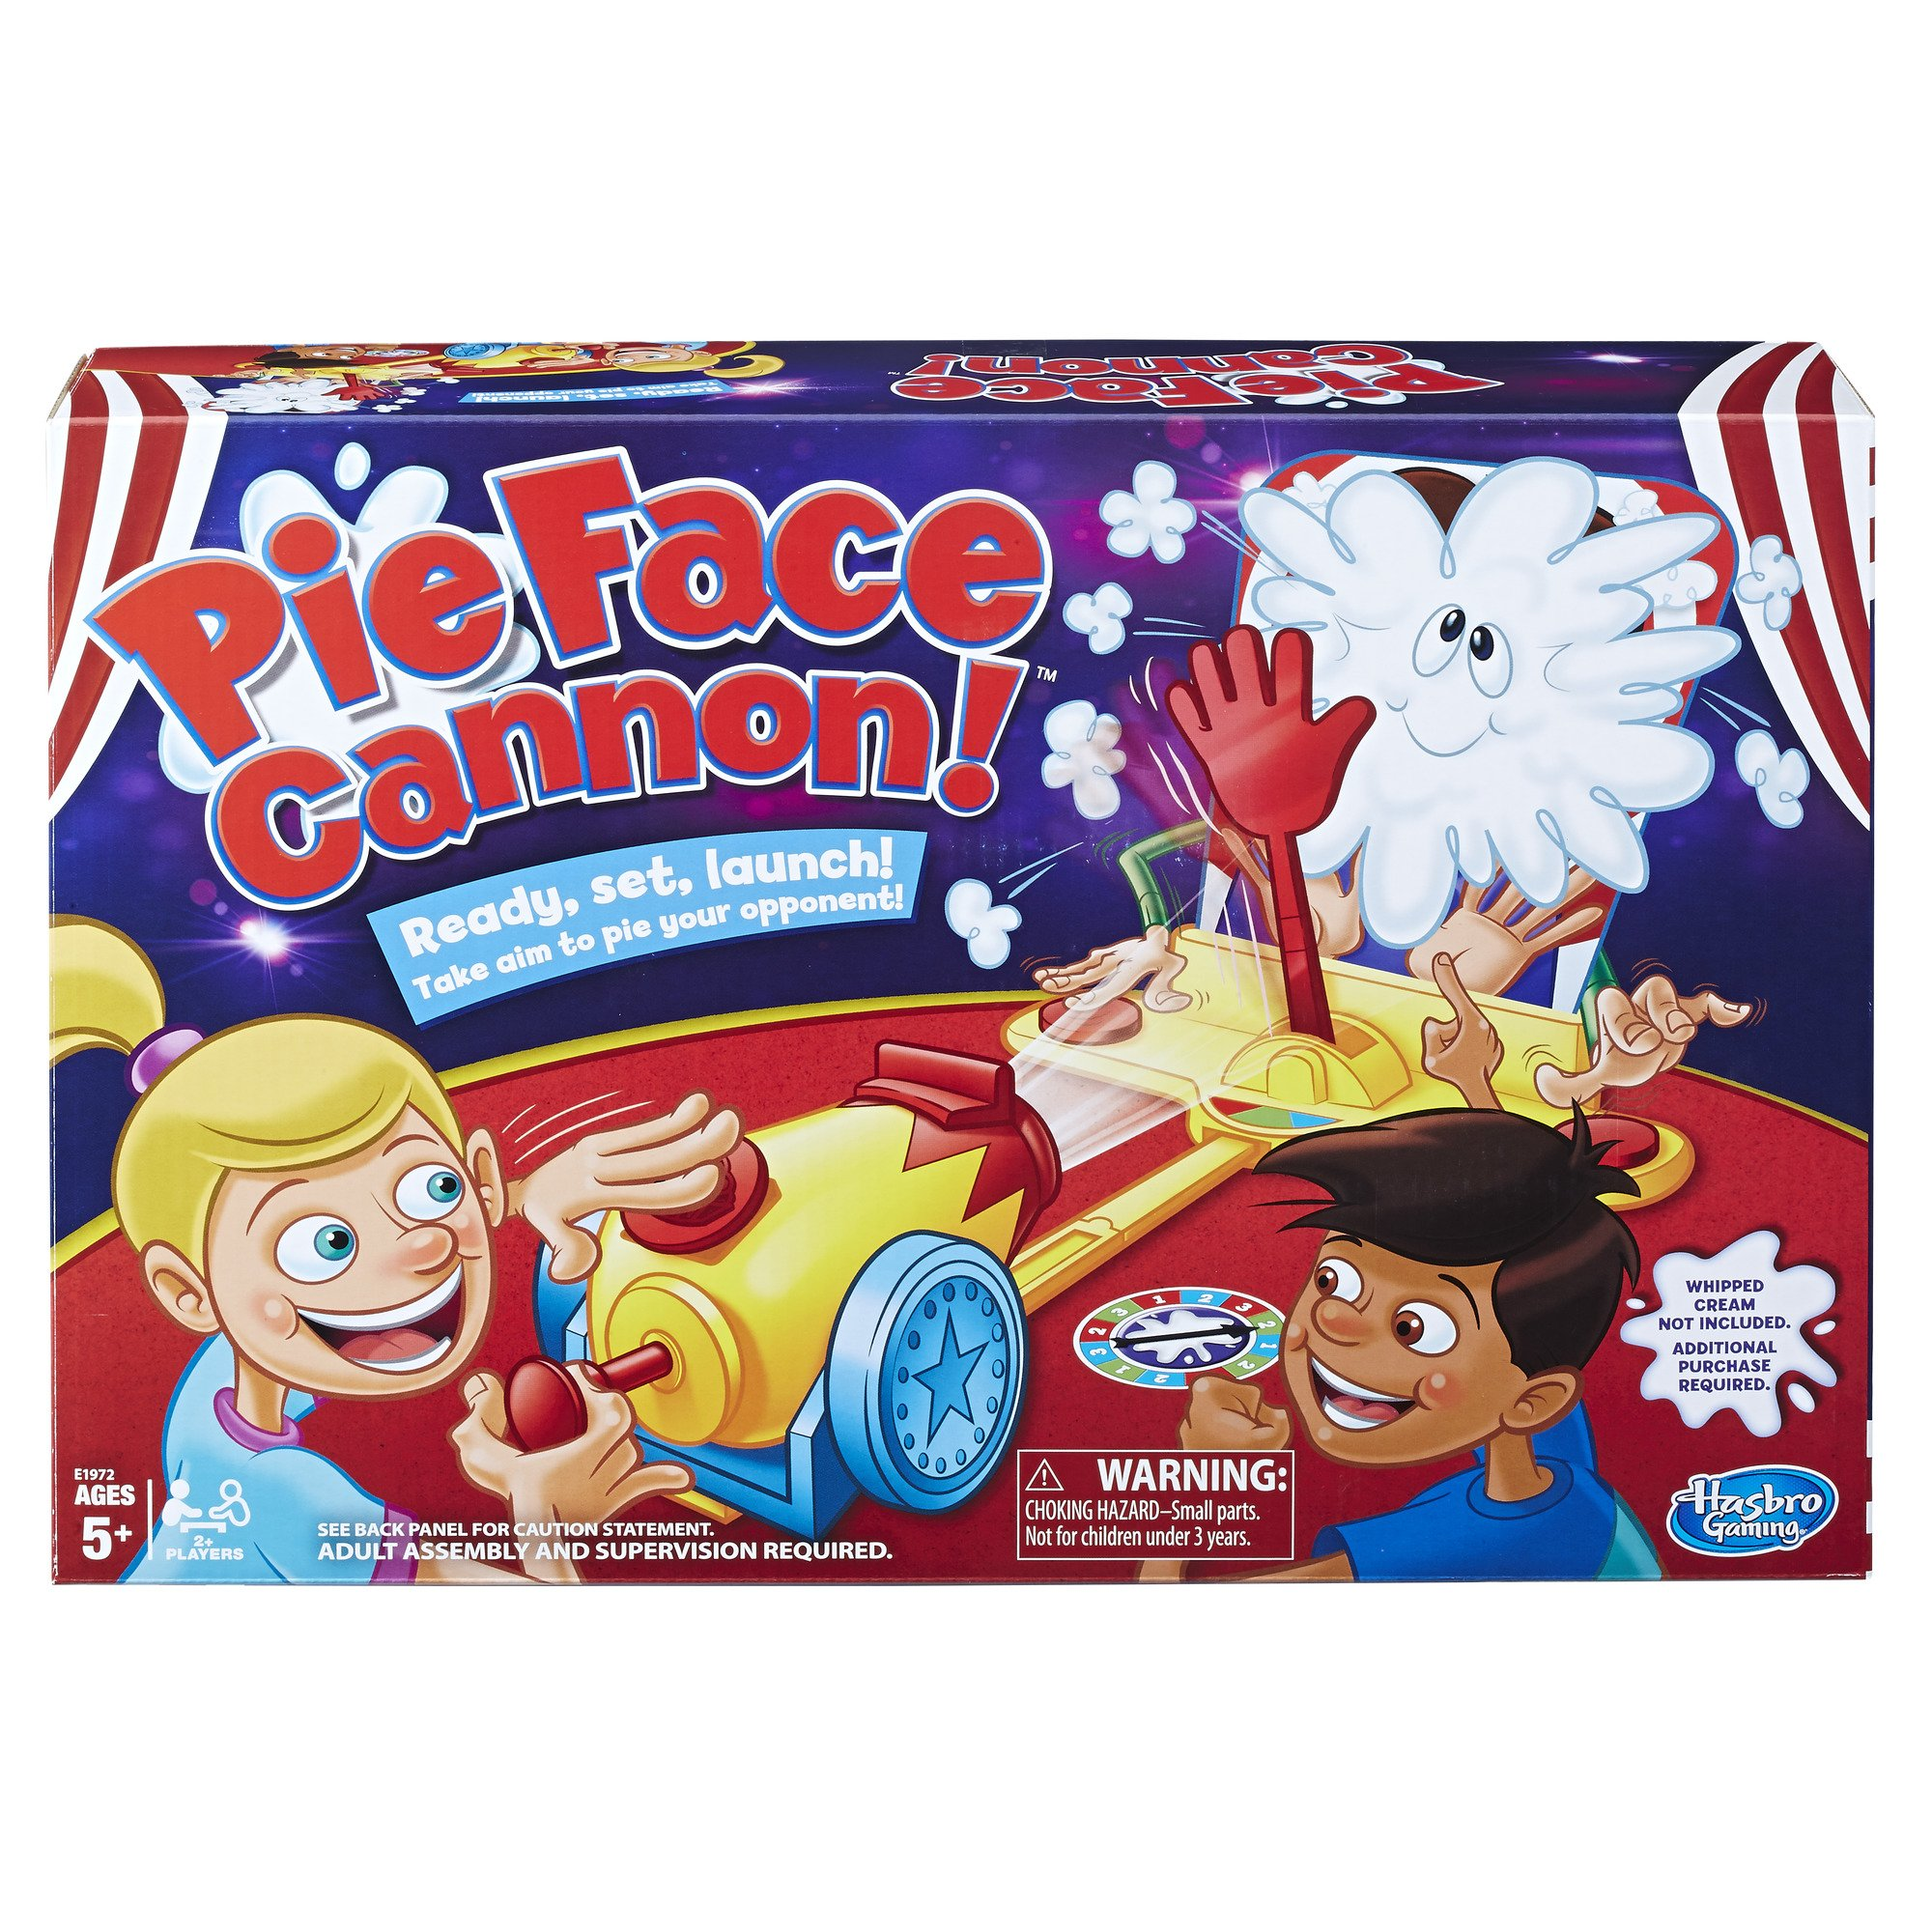 Pie Face Cannon Game Whipped Cream Family Board Game Kids Ages 5 and Up by Hasbro Gaming